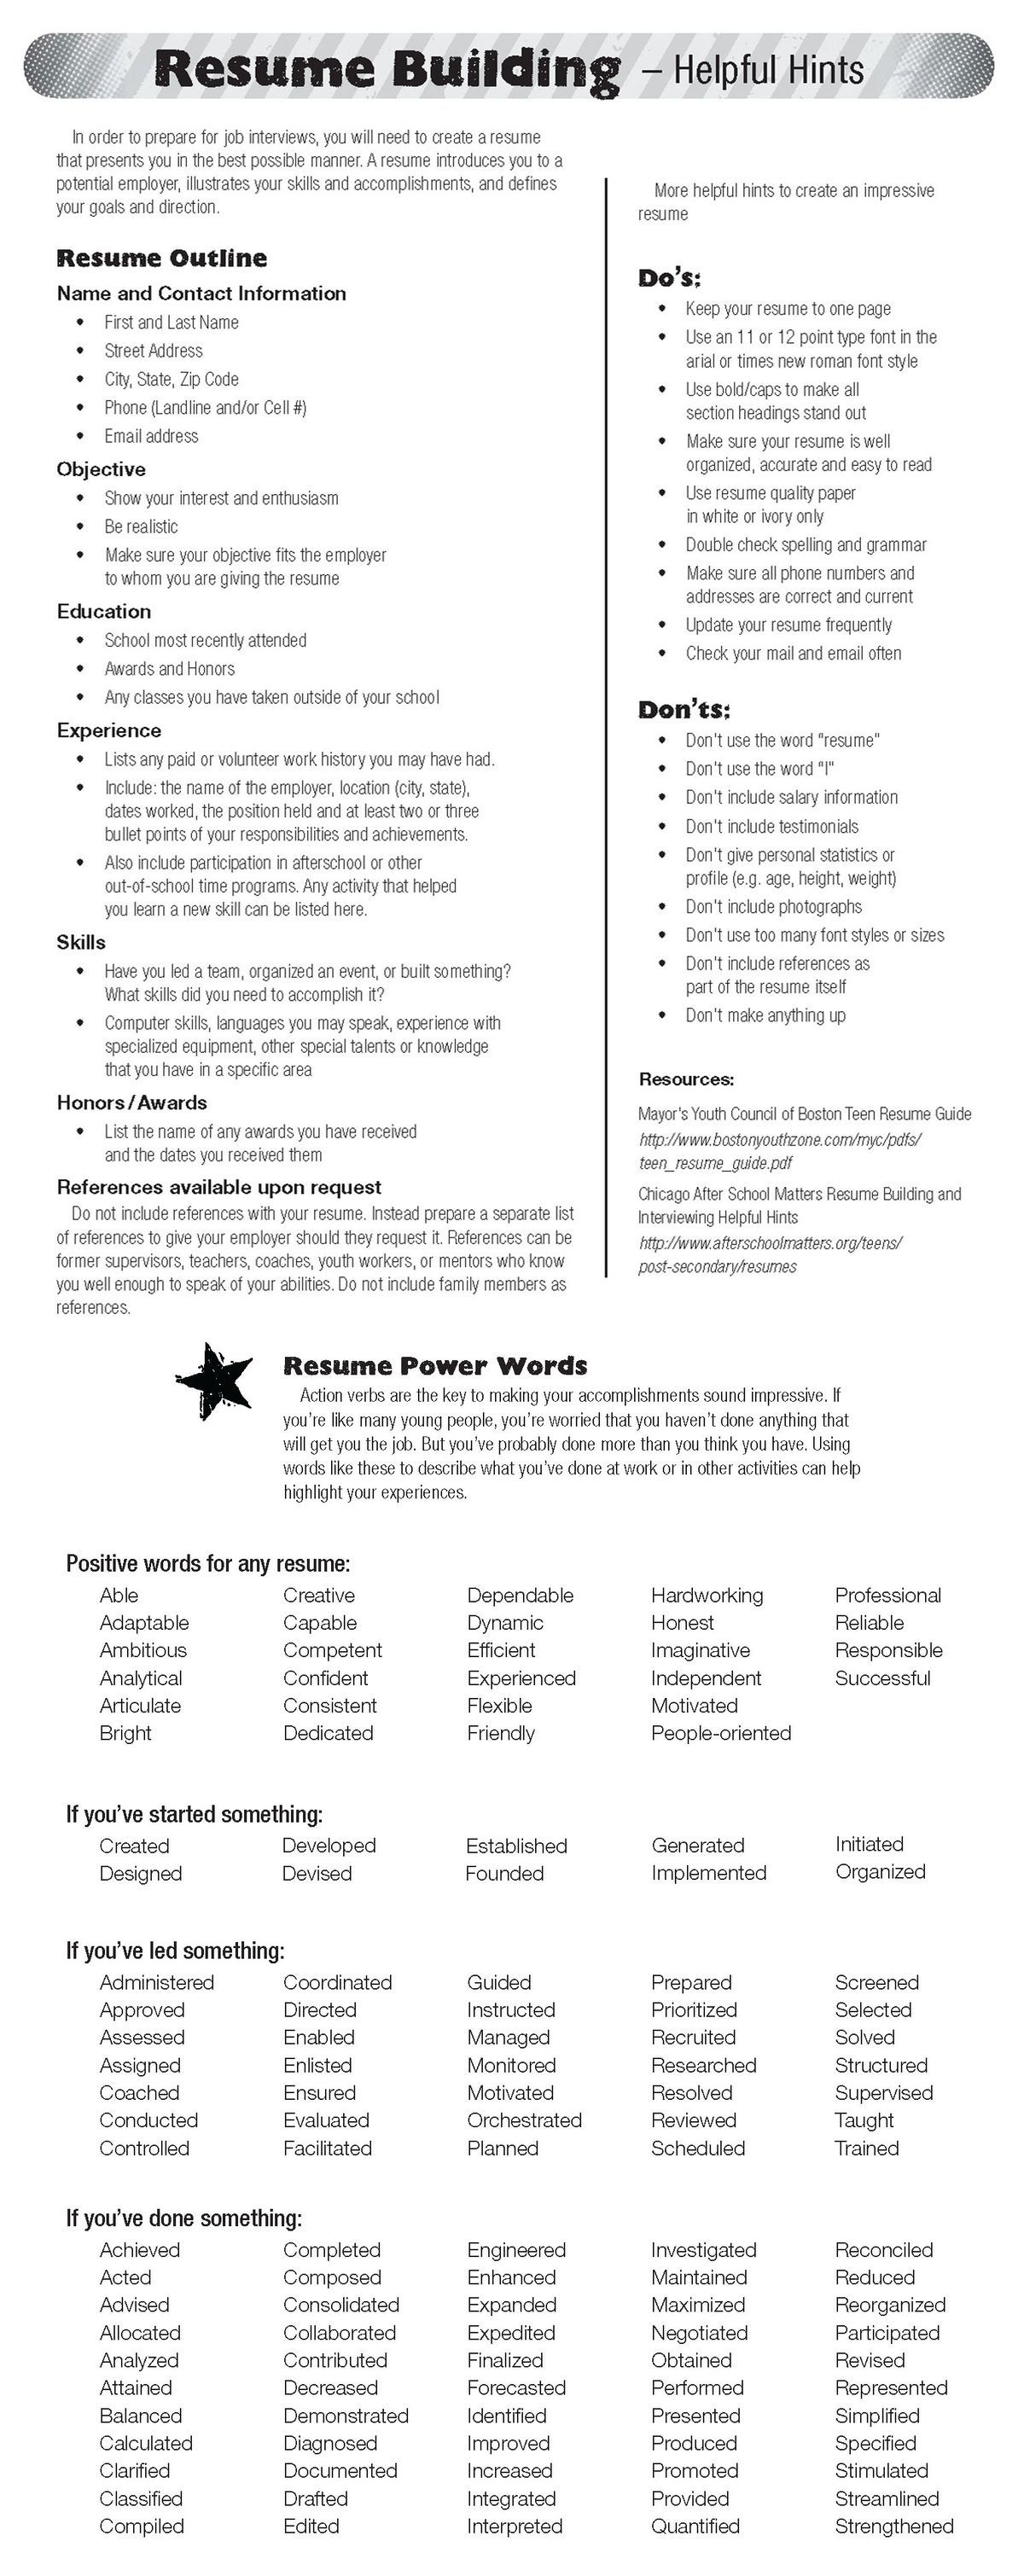 List Of Resume Skills Magnificent Pincarlie Schmaeling On College  Pinterest  Job Interviews .